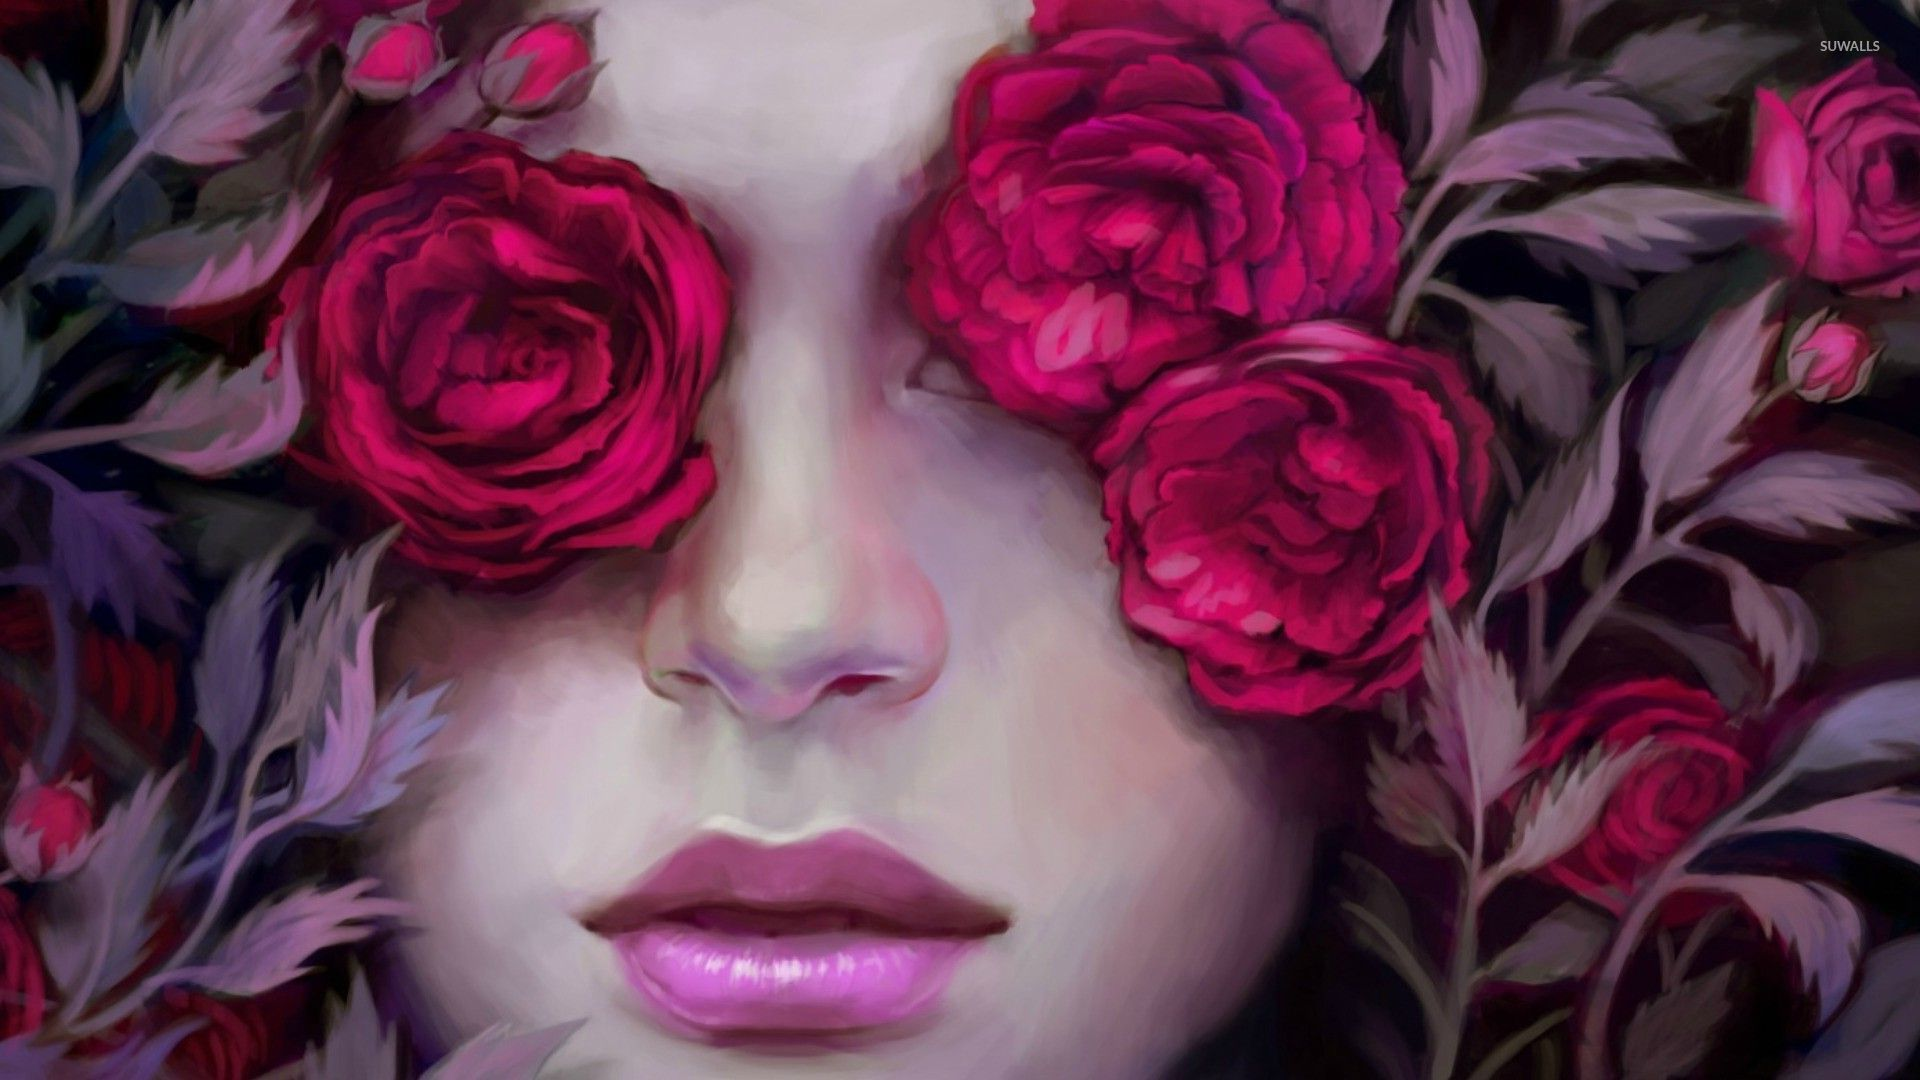 Woman Hiding Behind Pink Roses Wallpaper 1920x1080 Jpg